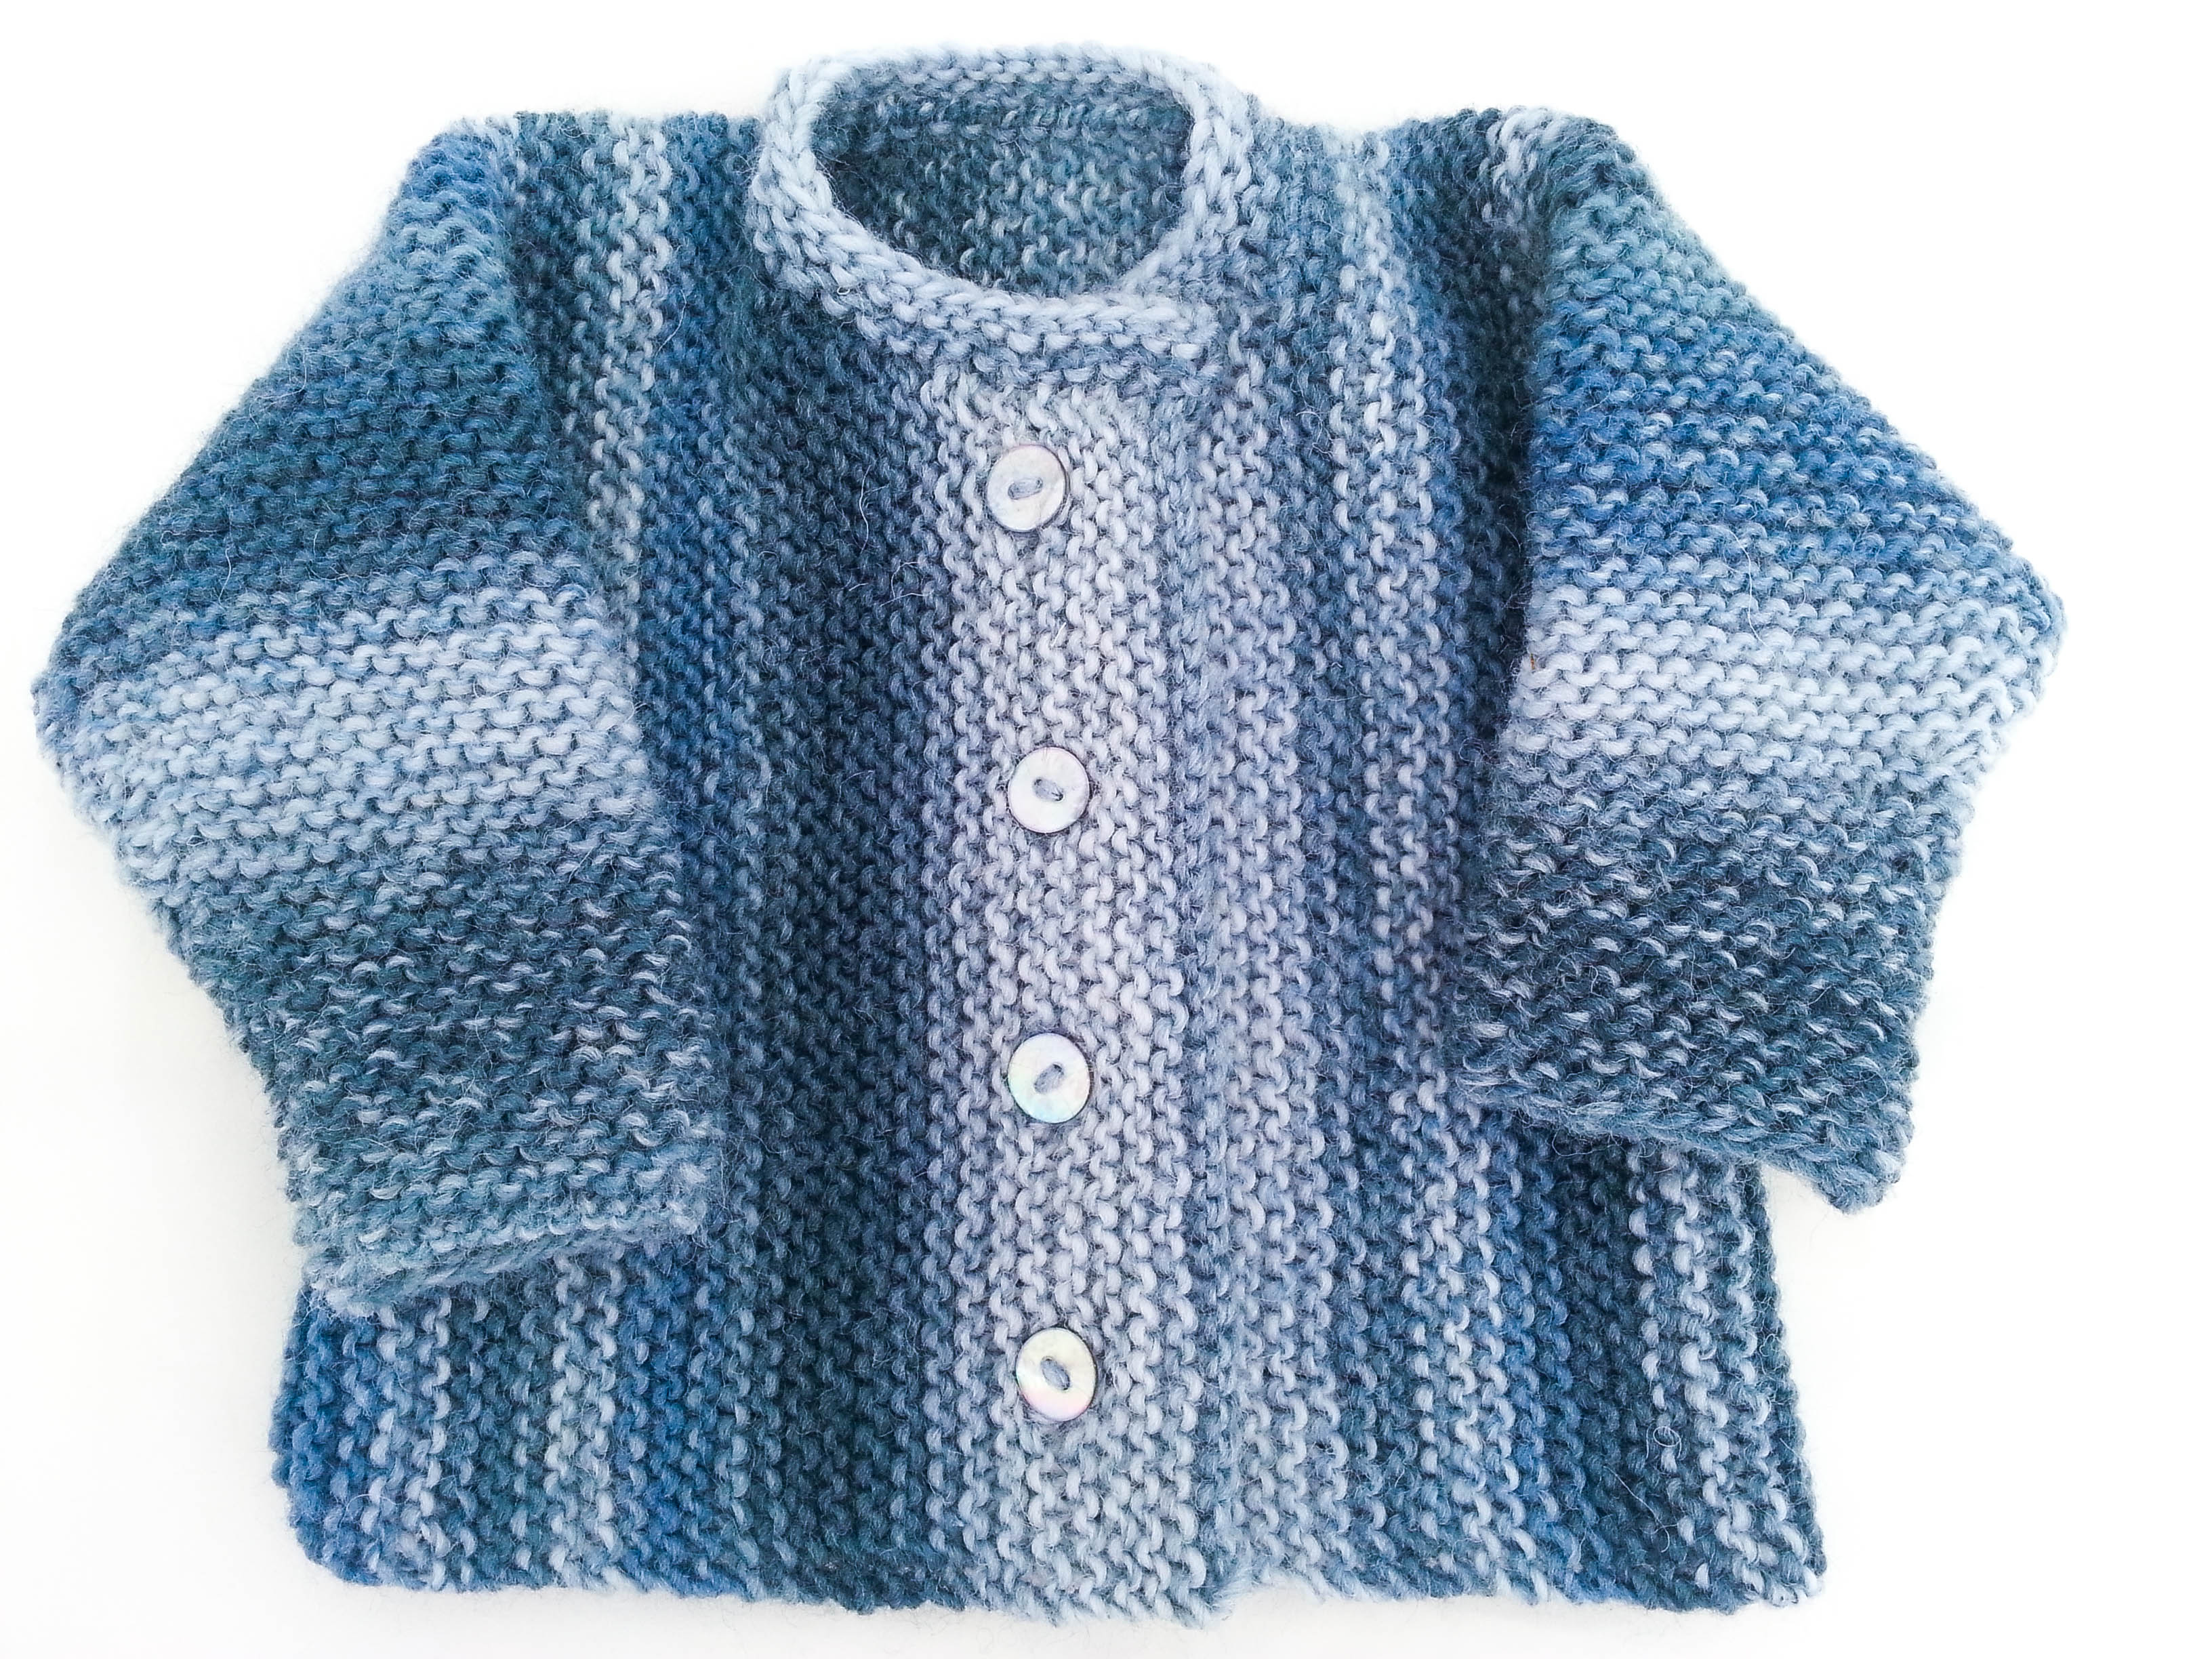 KNITTING PATTERN , Garter Stitch Baby Cardigan, One Piece Baby Sweater , 5 Sizes, Easy Pattern, Toddler Buttoned Sweater